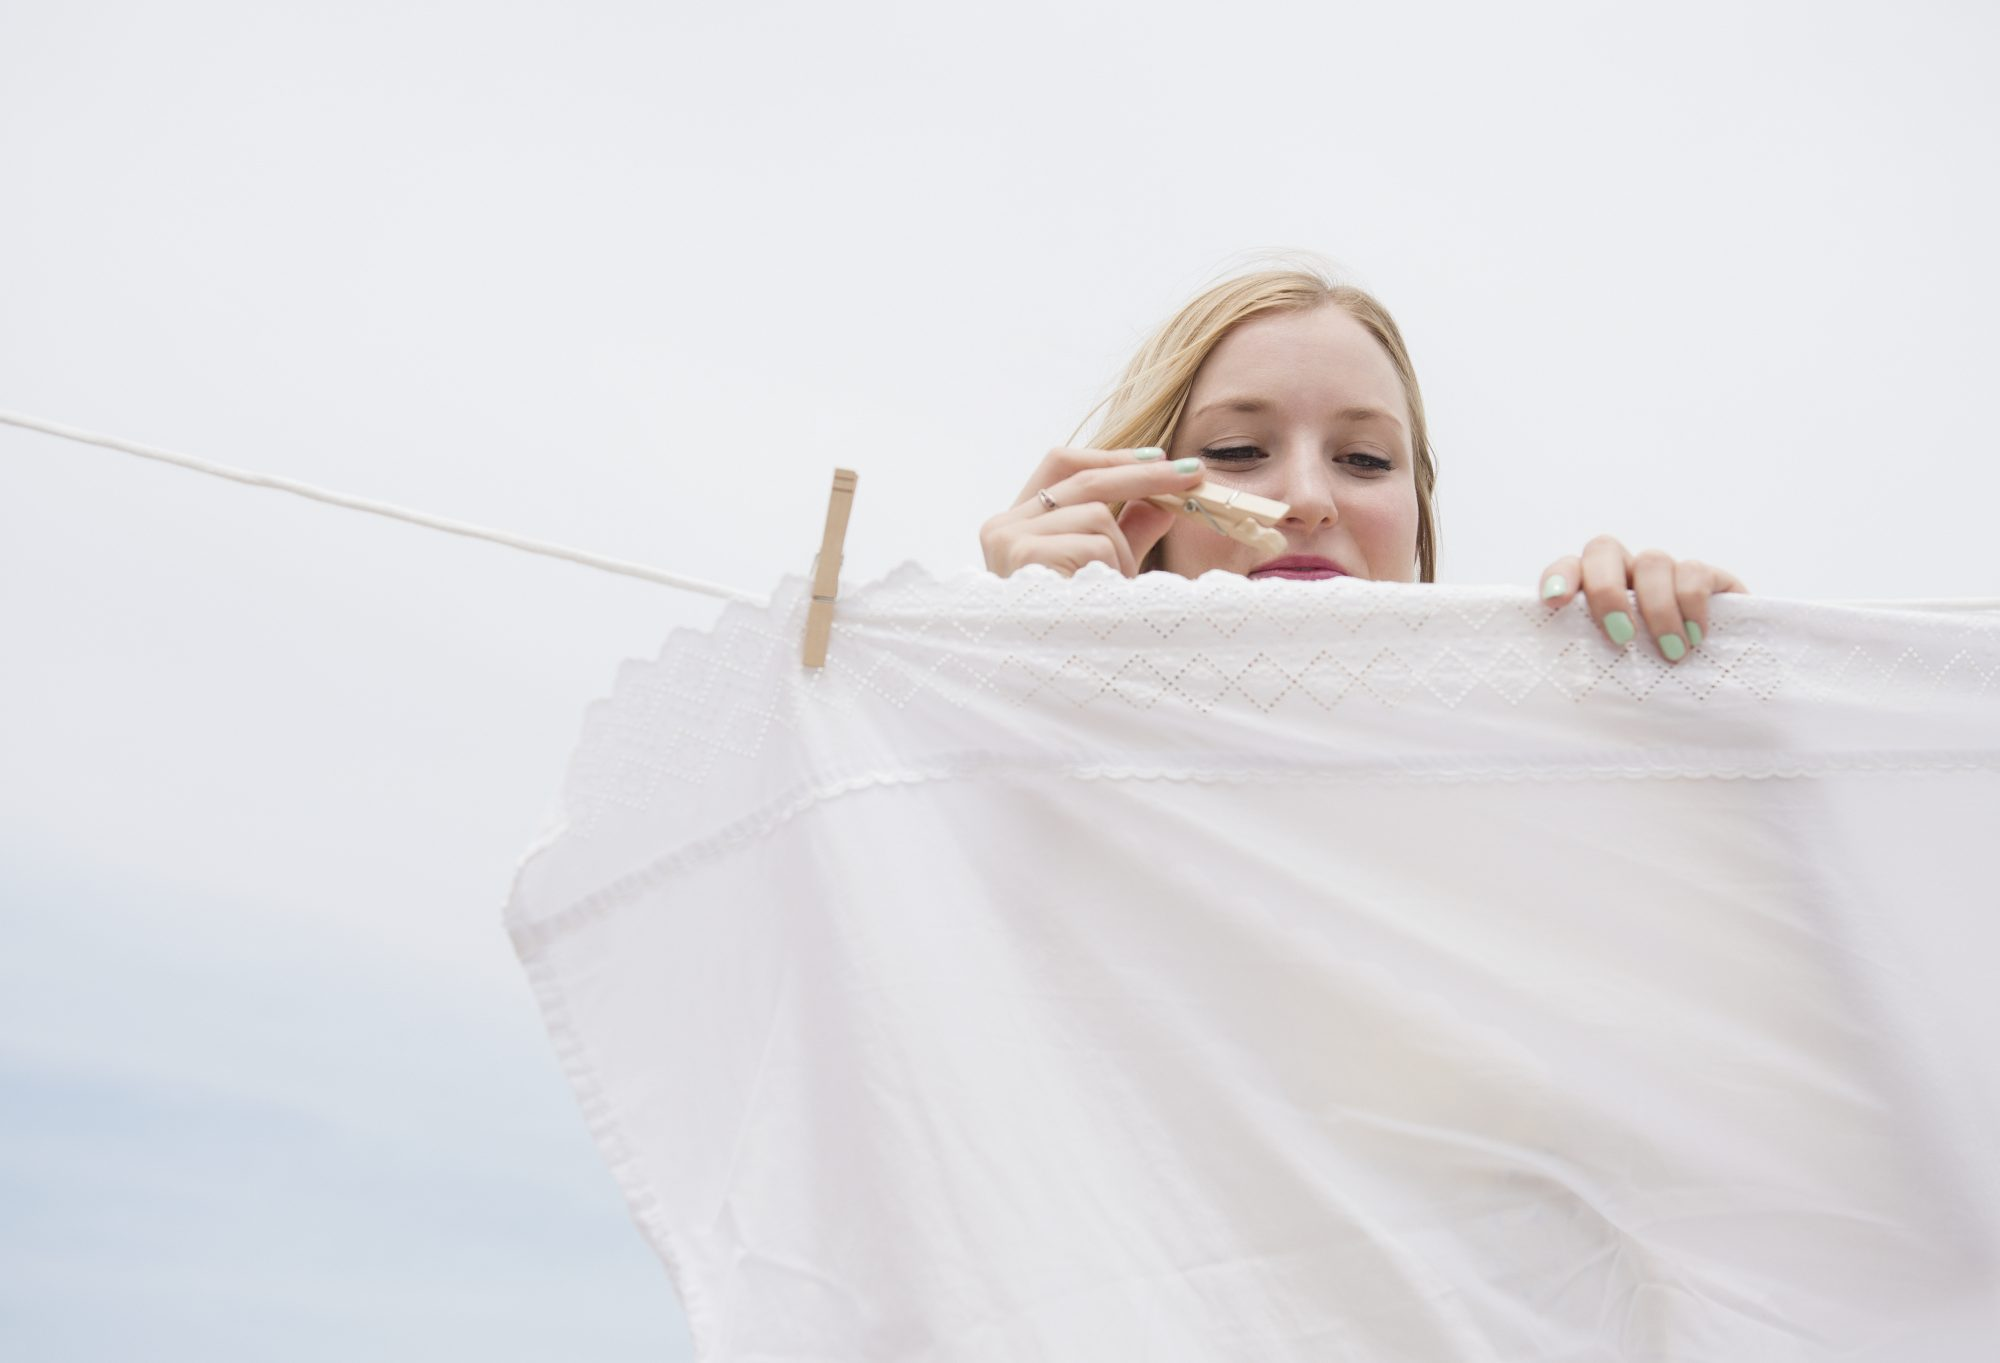 woman pinning laundry on clothing wire outdoors